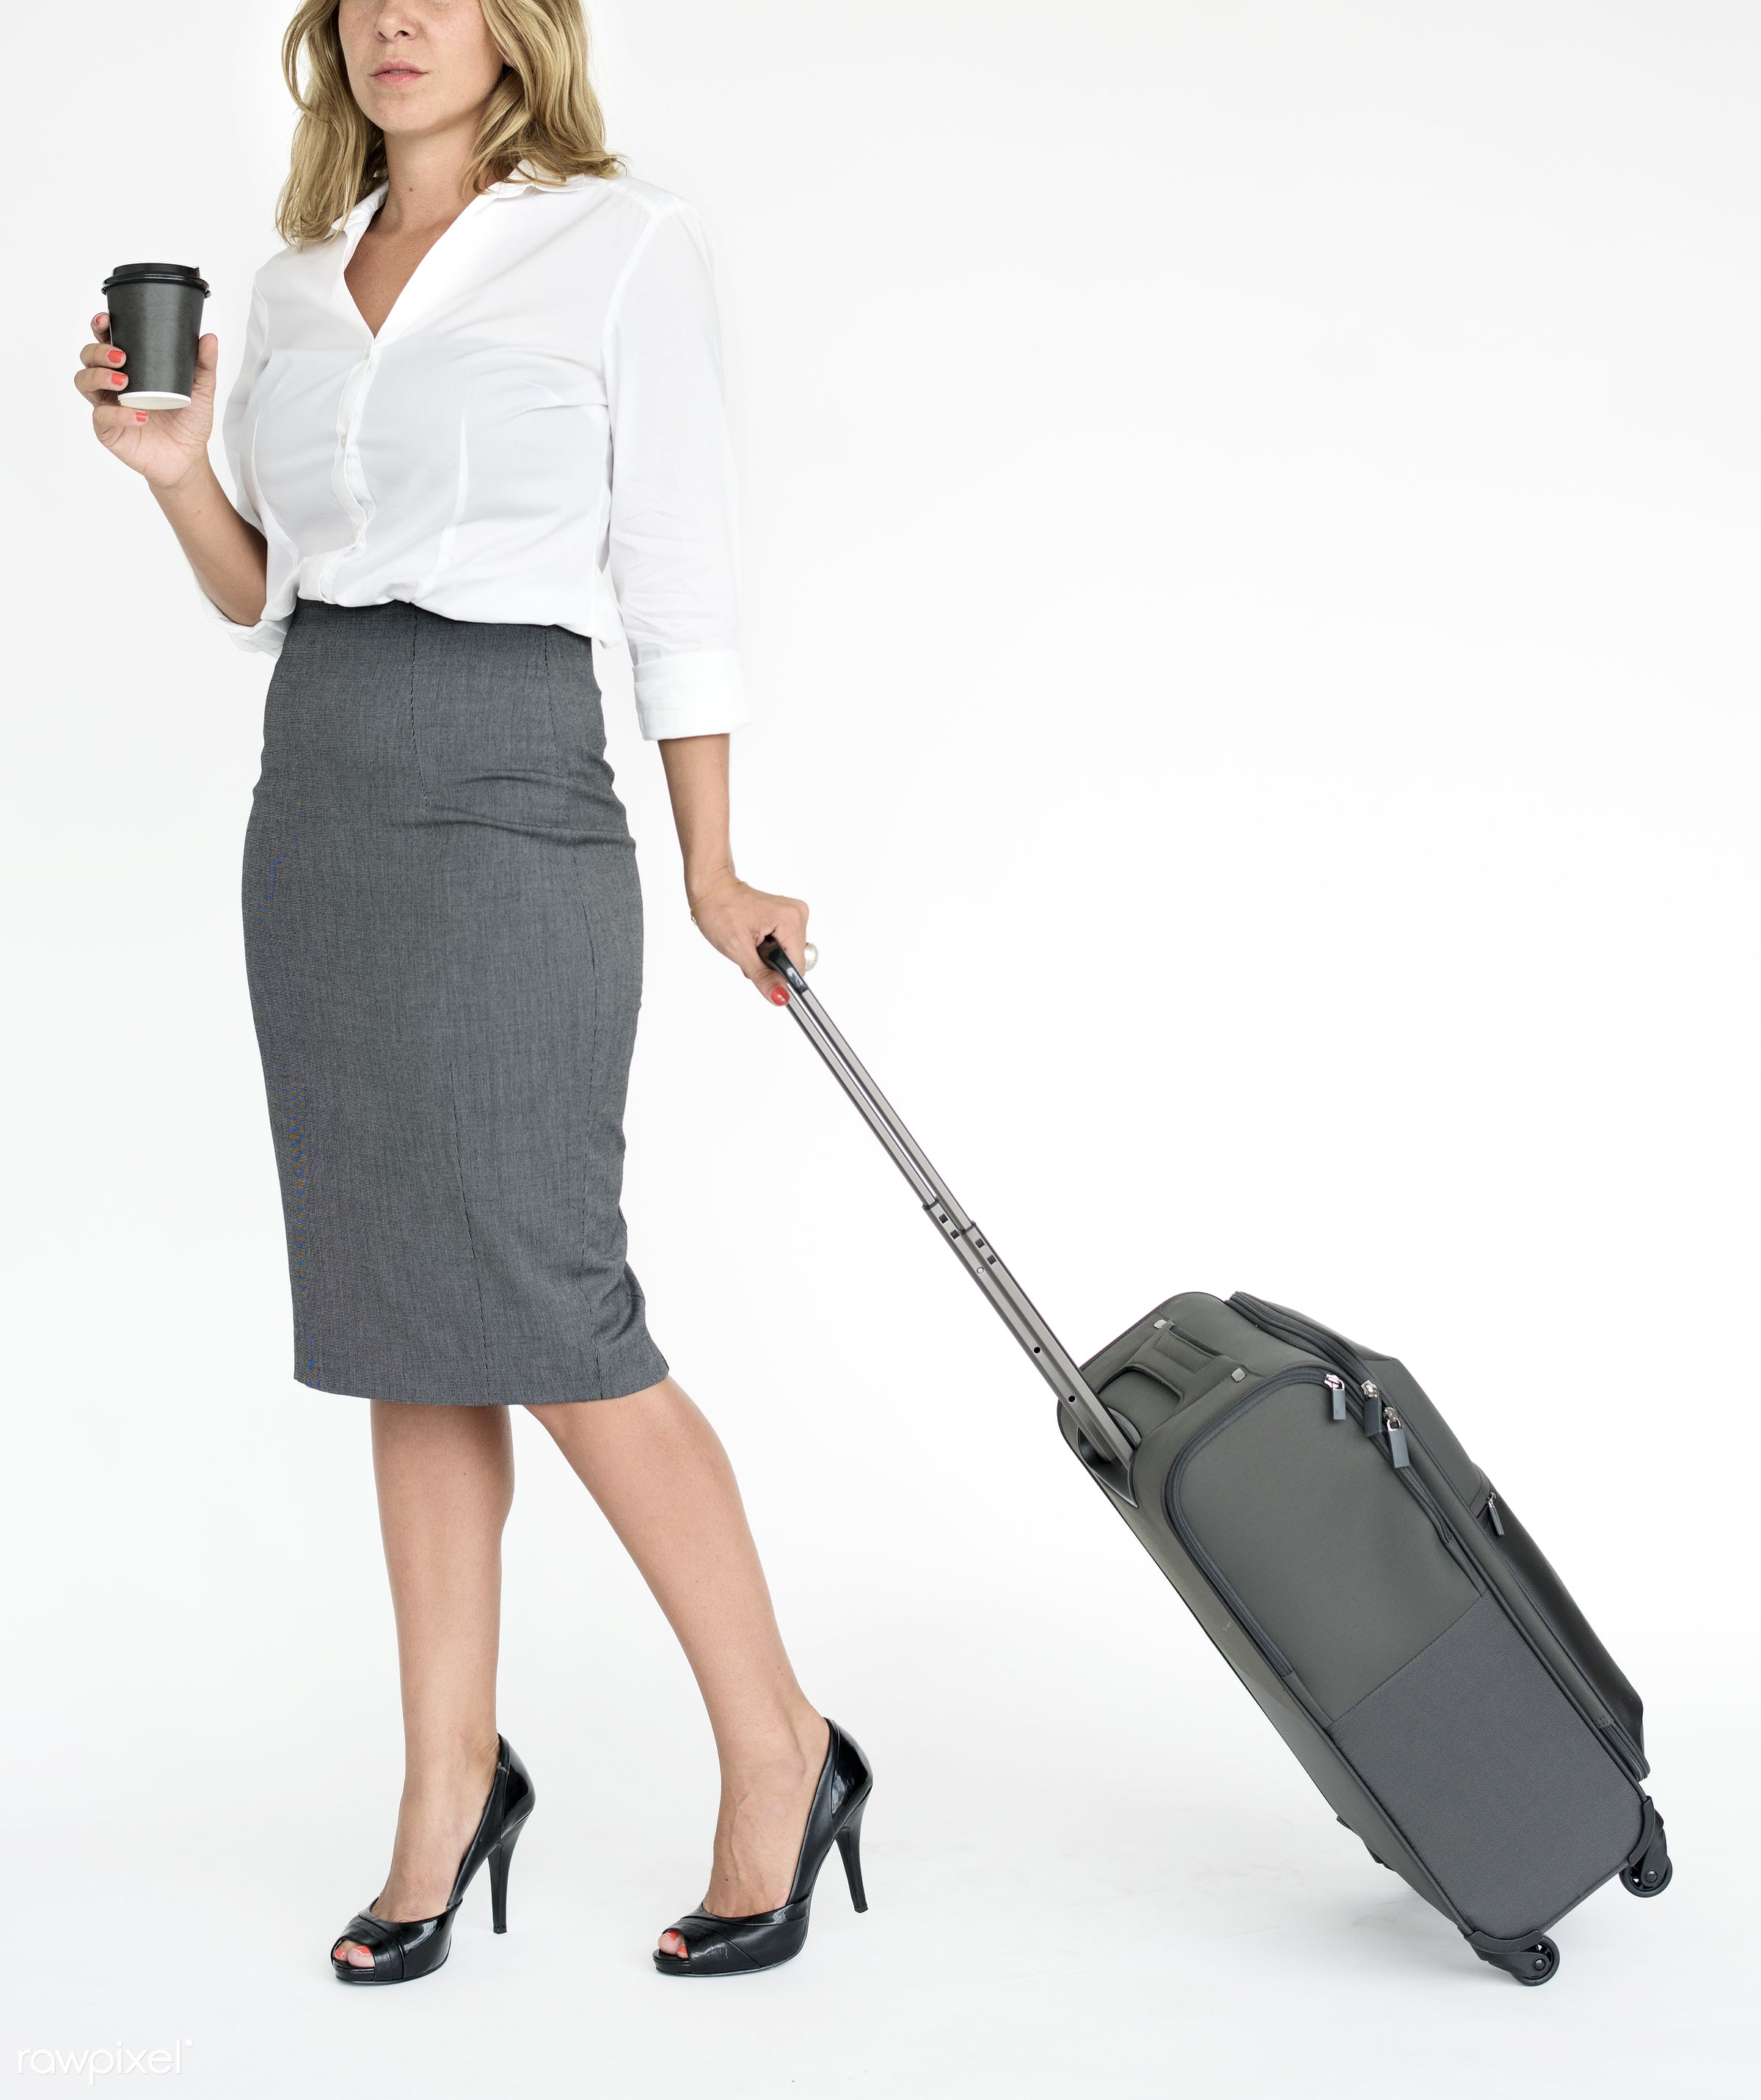 studio, baggage, expression, person, manager, full length, commuter, luggage, people, modelnationality, assistant, woman,...